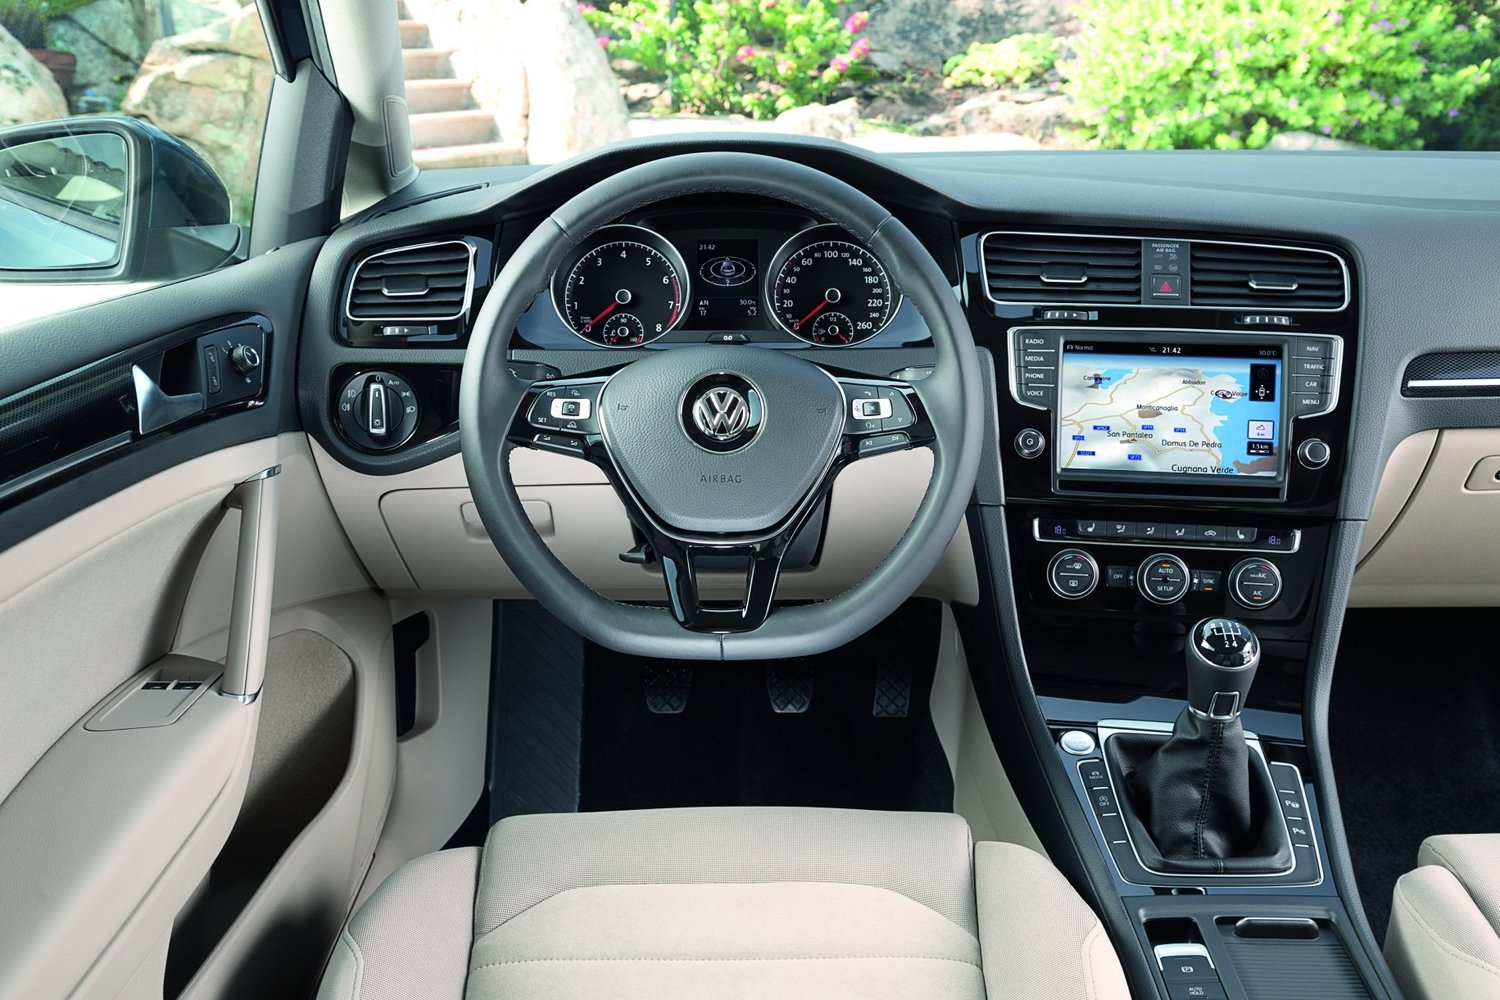 хэтчбек 3 дв. Volkswagen Golf 2013 - 2016г выпуска модификация 1.0 AMT (115 л.с.)